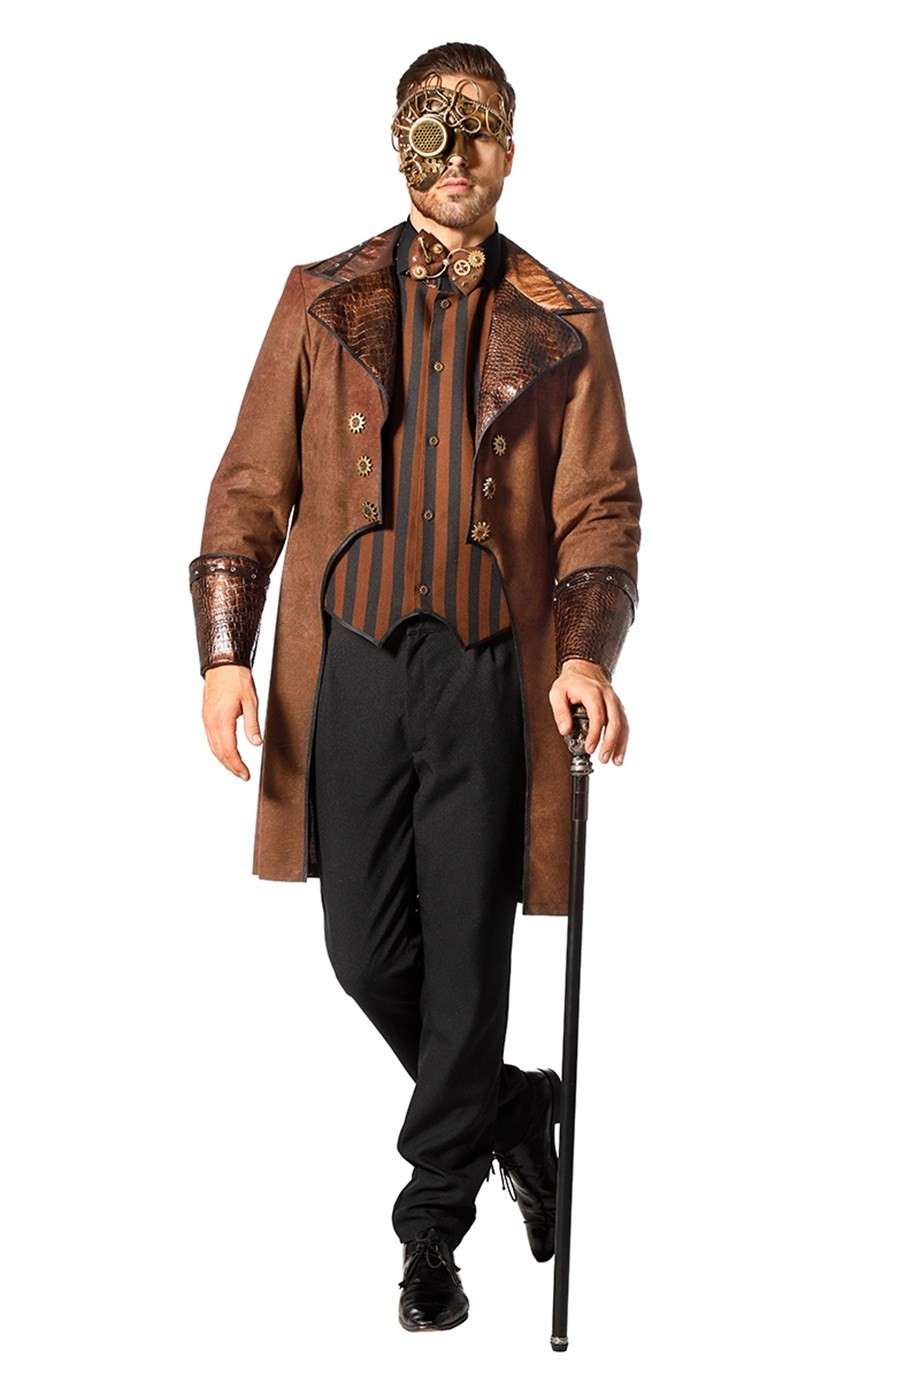 Costume Noble Steampunk pour homme